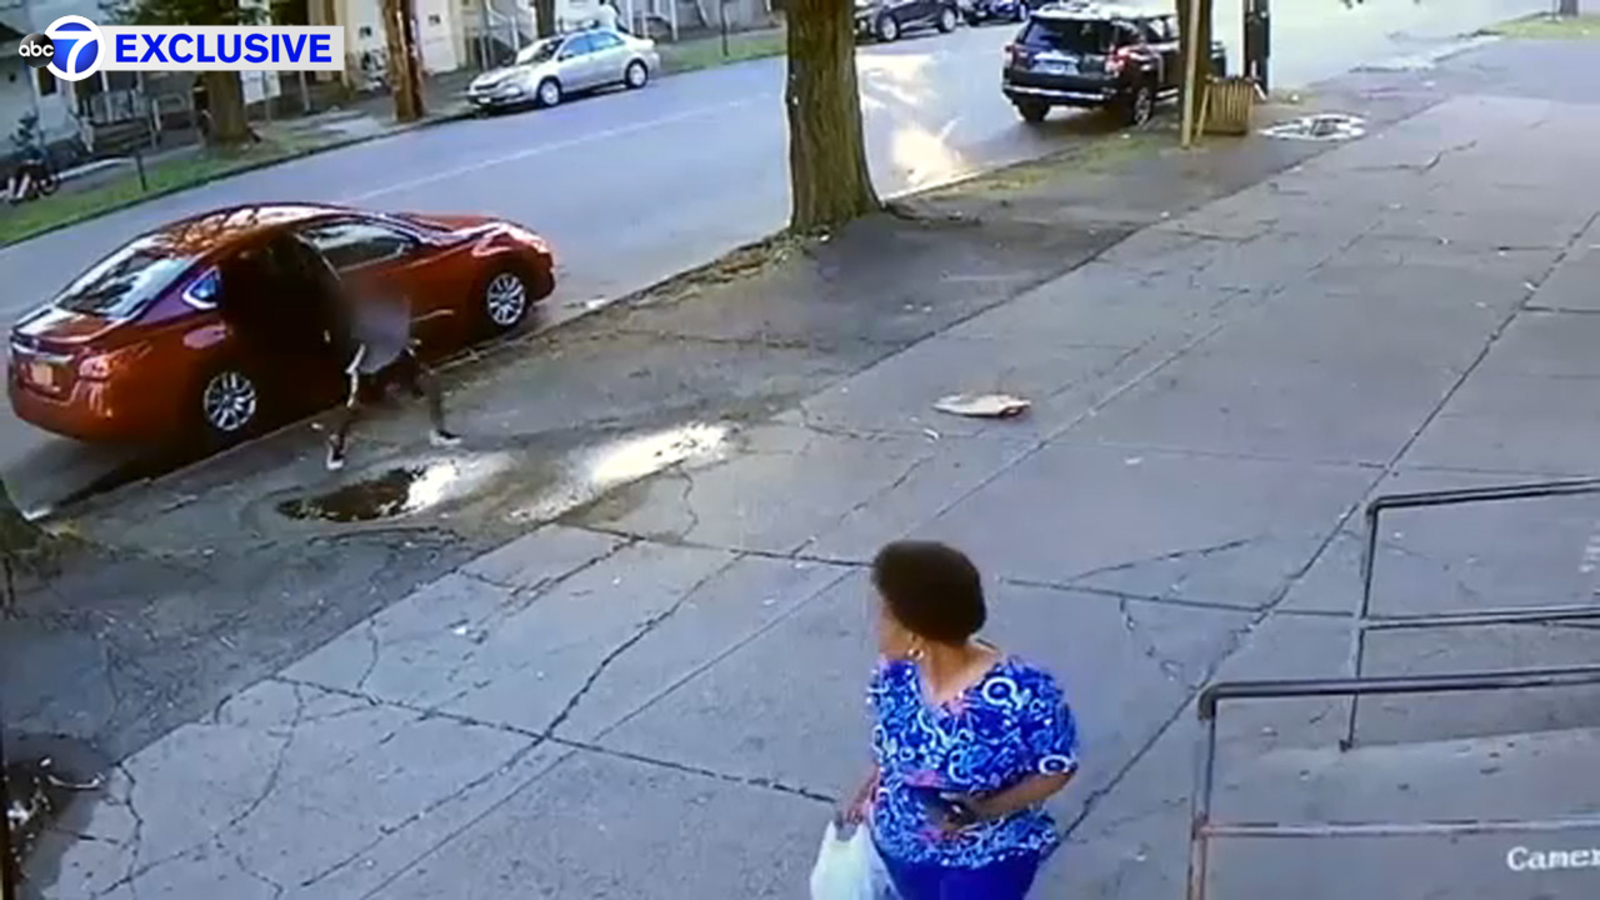 Video shows carjacking with 2 kids in vehicle